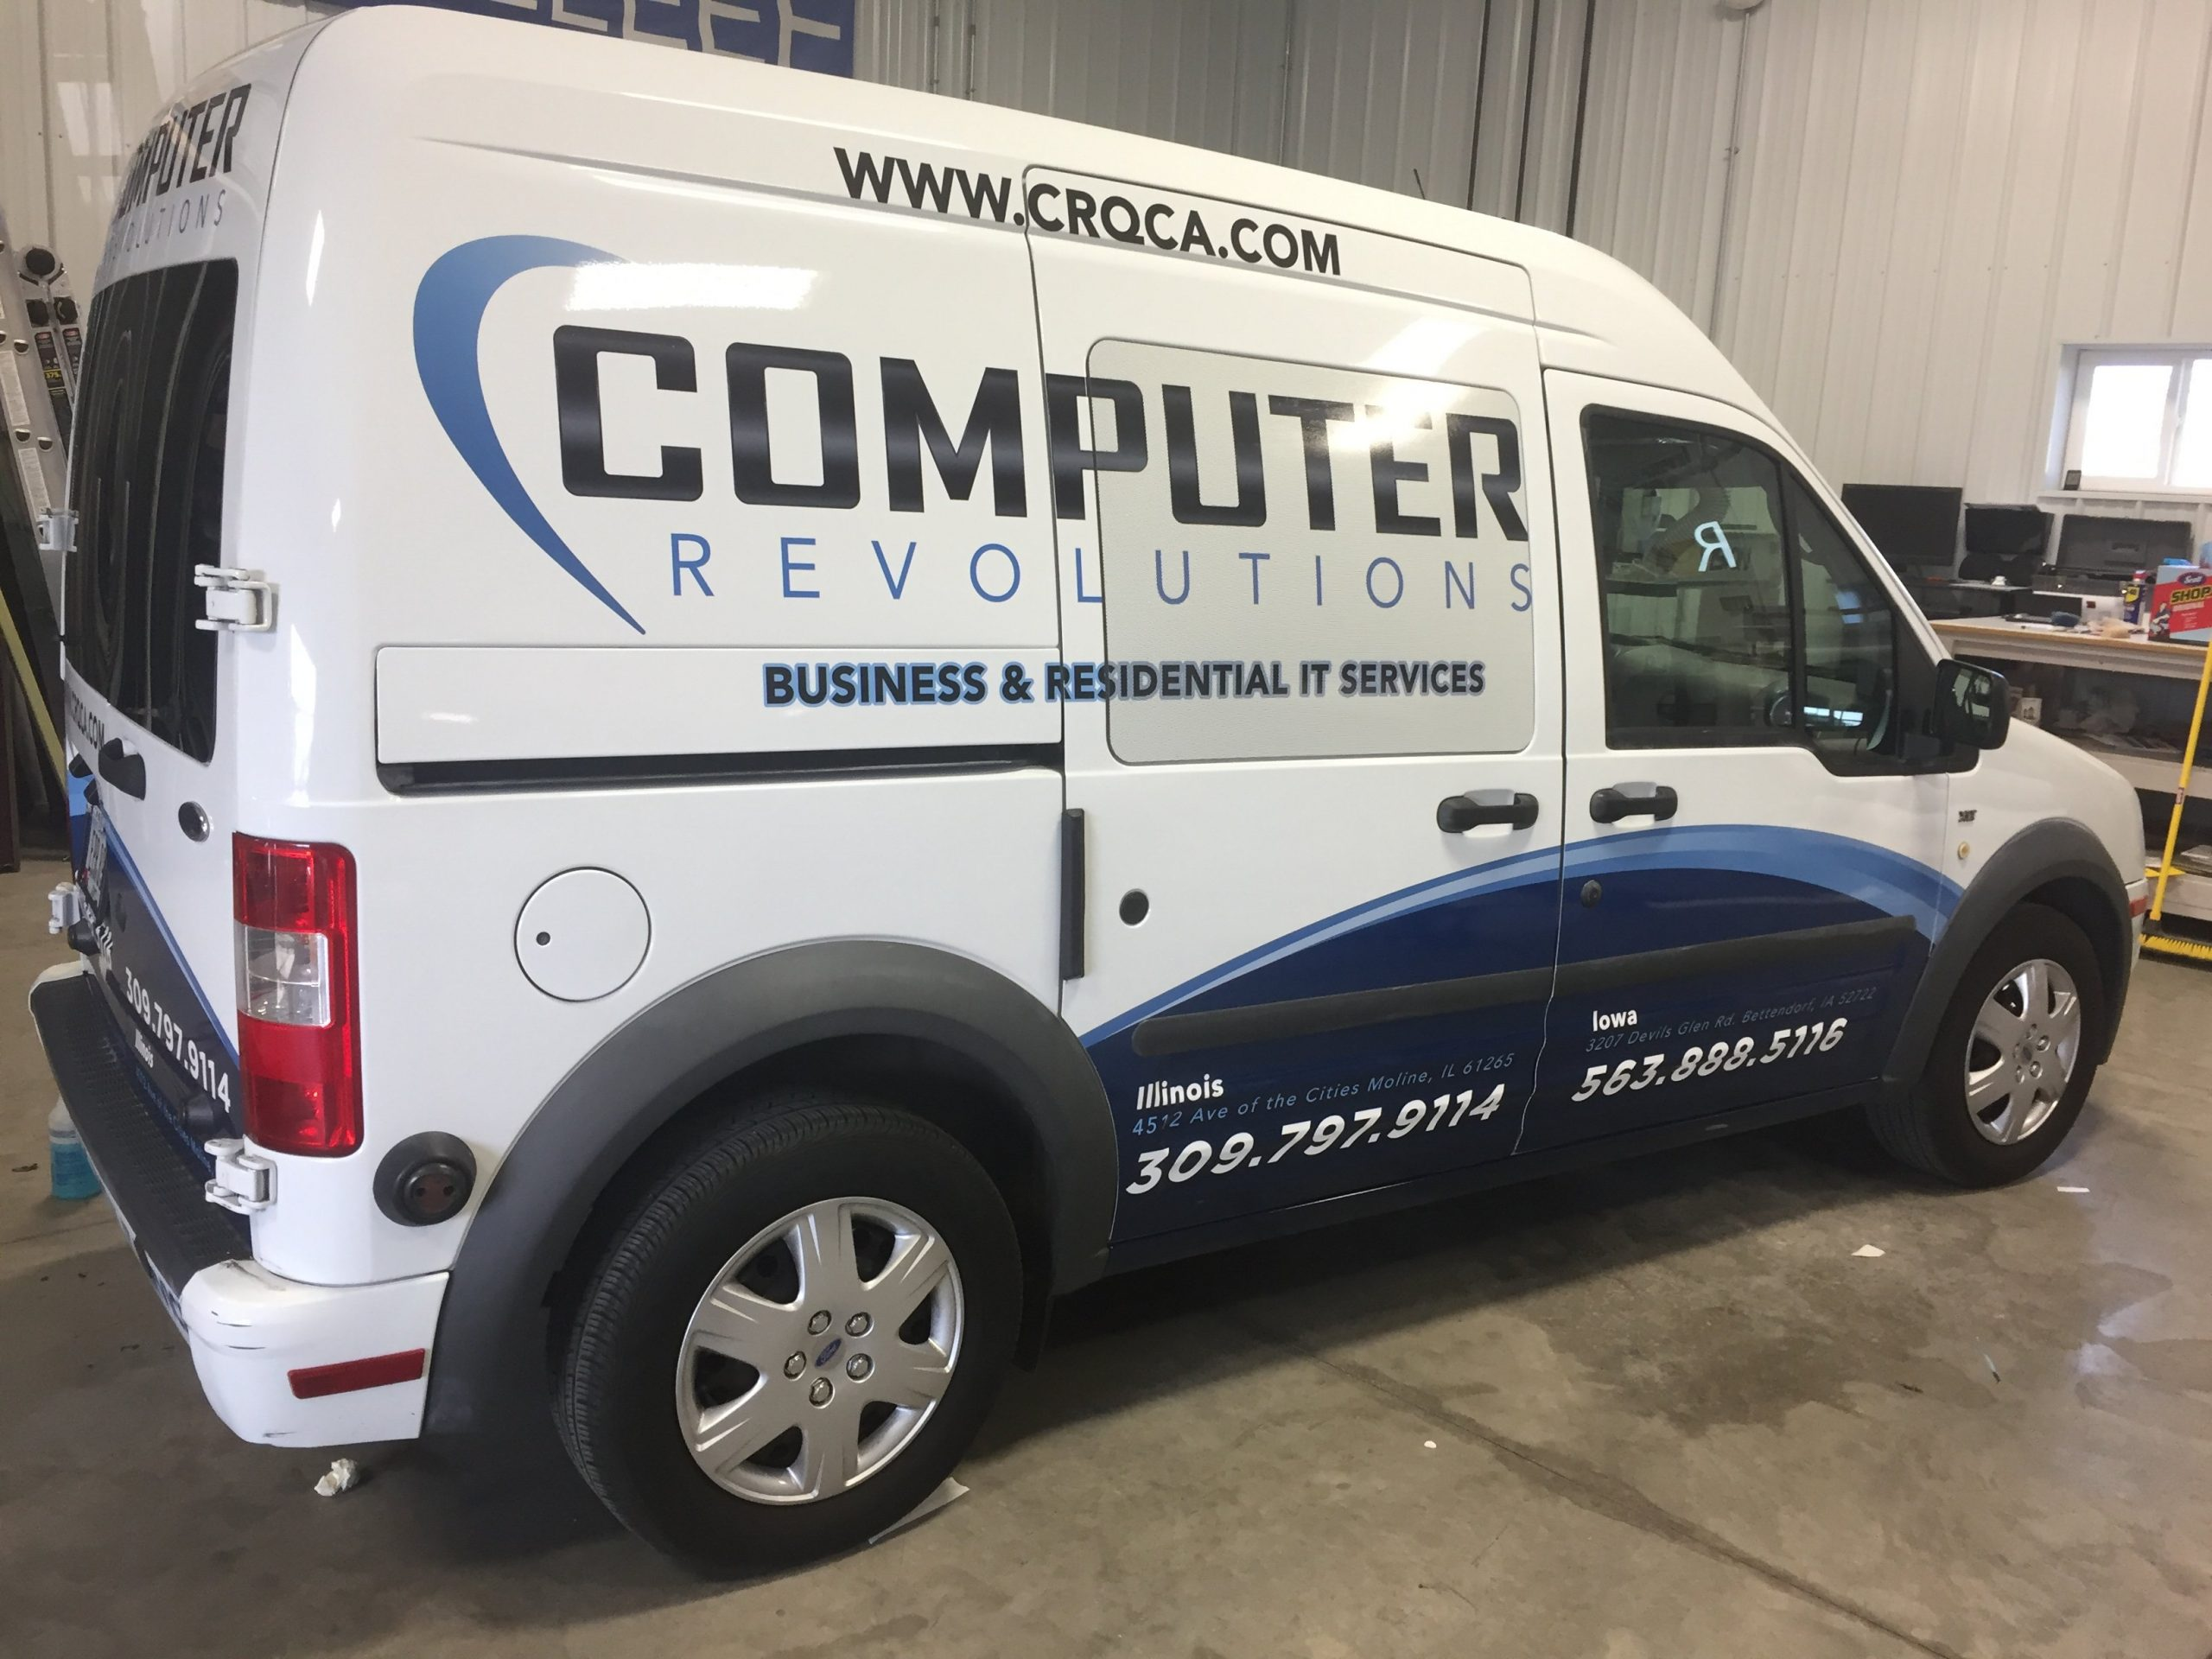 Van vehicle wrap for Computer Revolutions in Bettendorf and East Moline